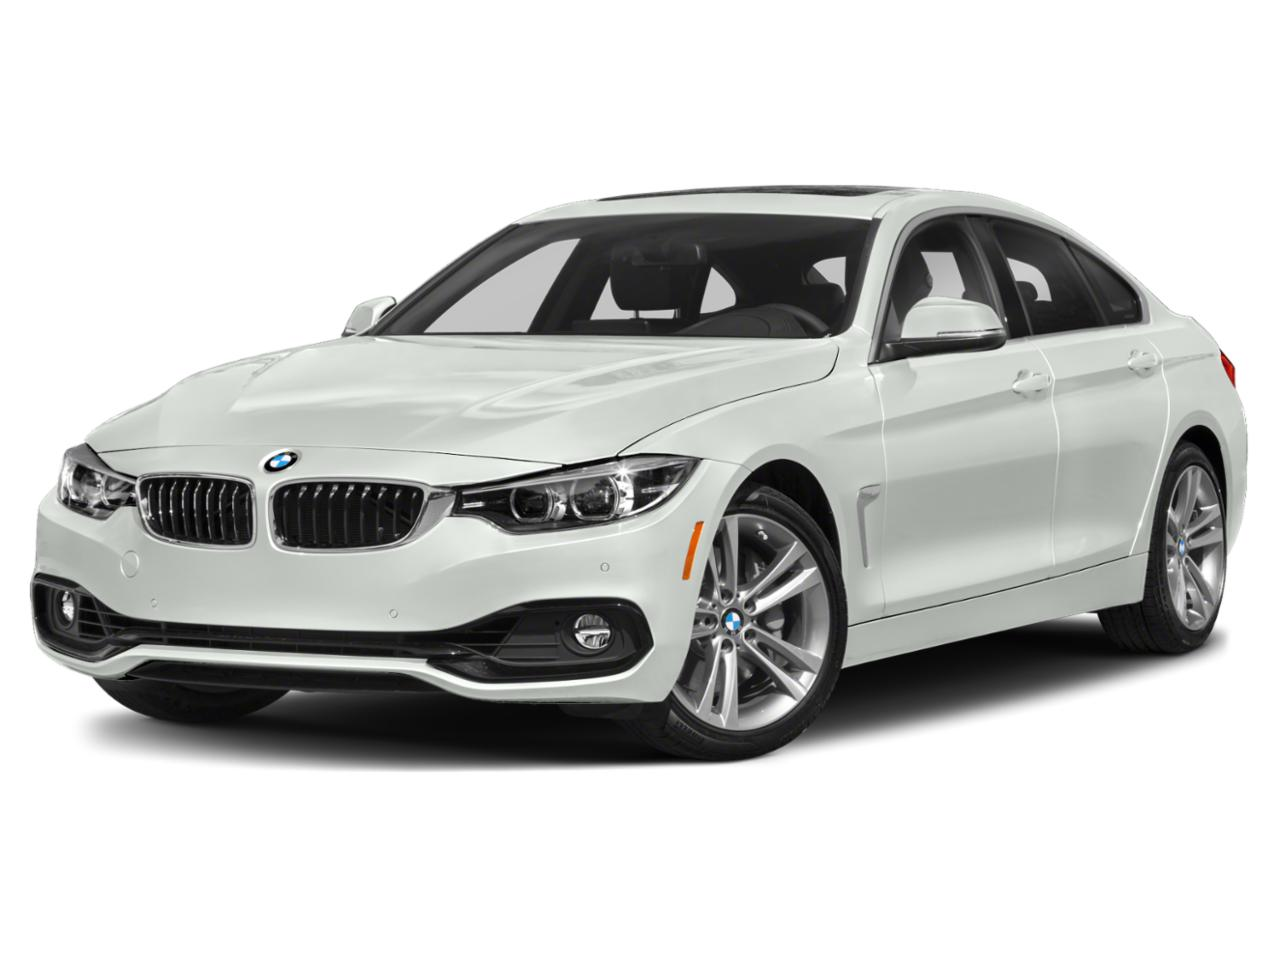 2019 BMW 440i Vehicle Photo in San Antonio, TX 78257